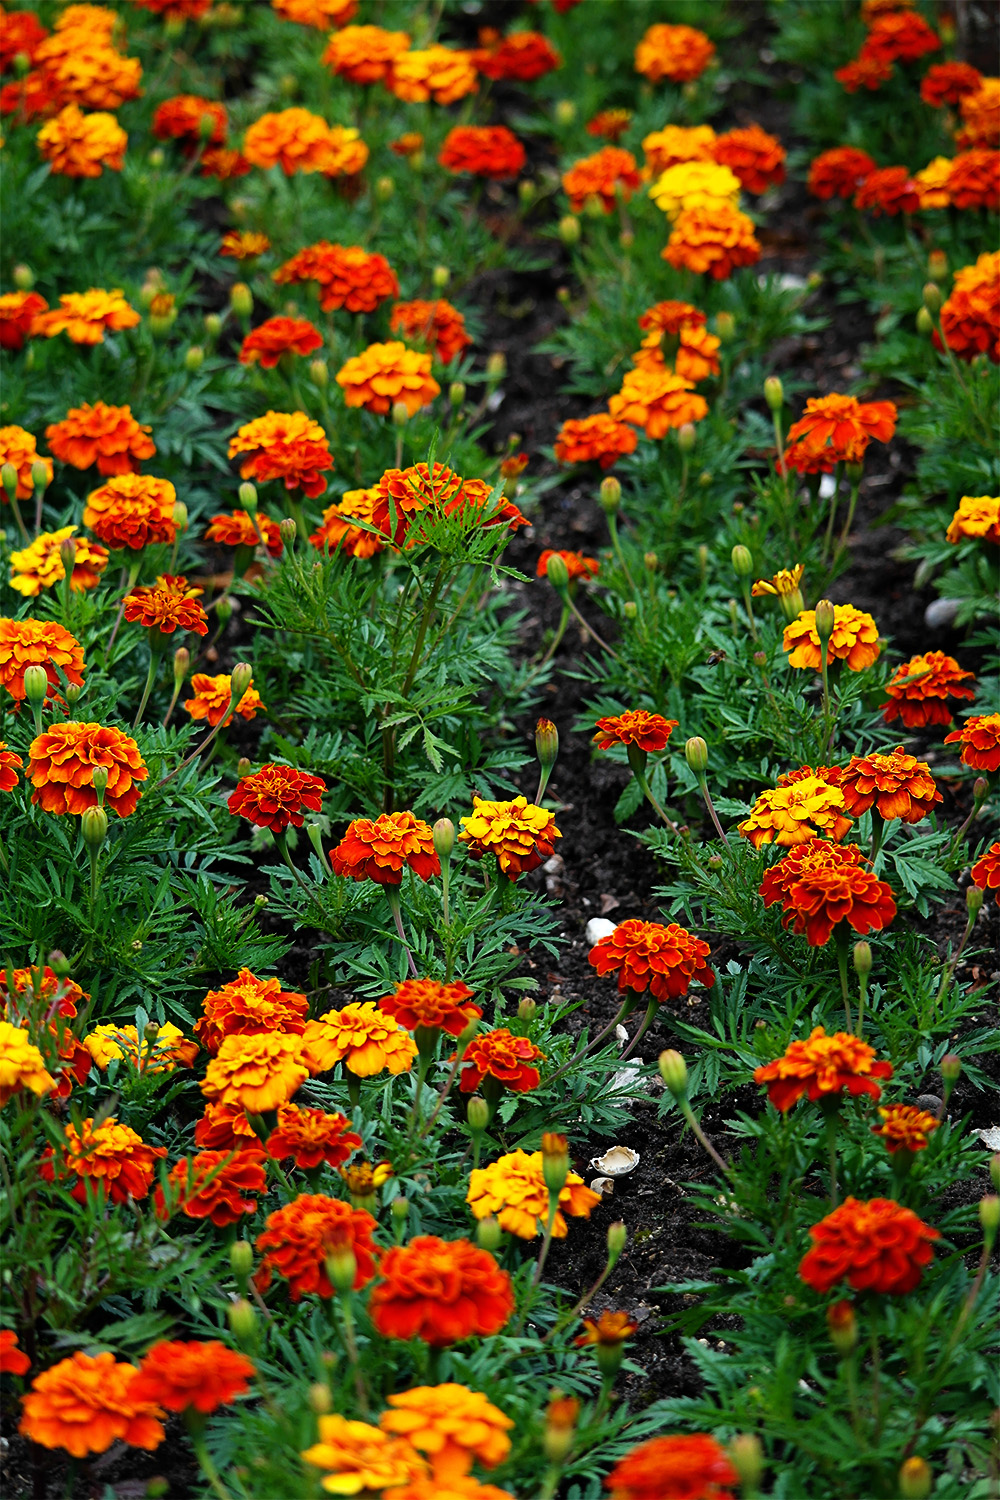 Rows of Marigolds